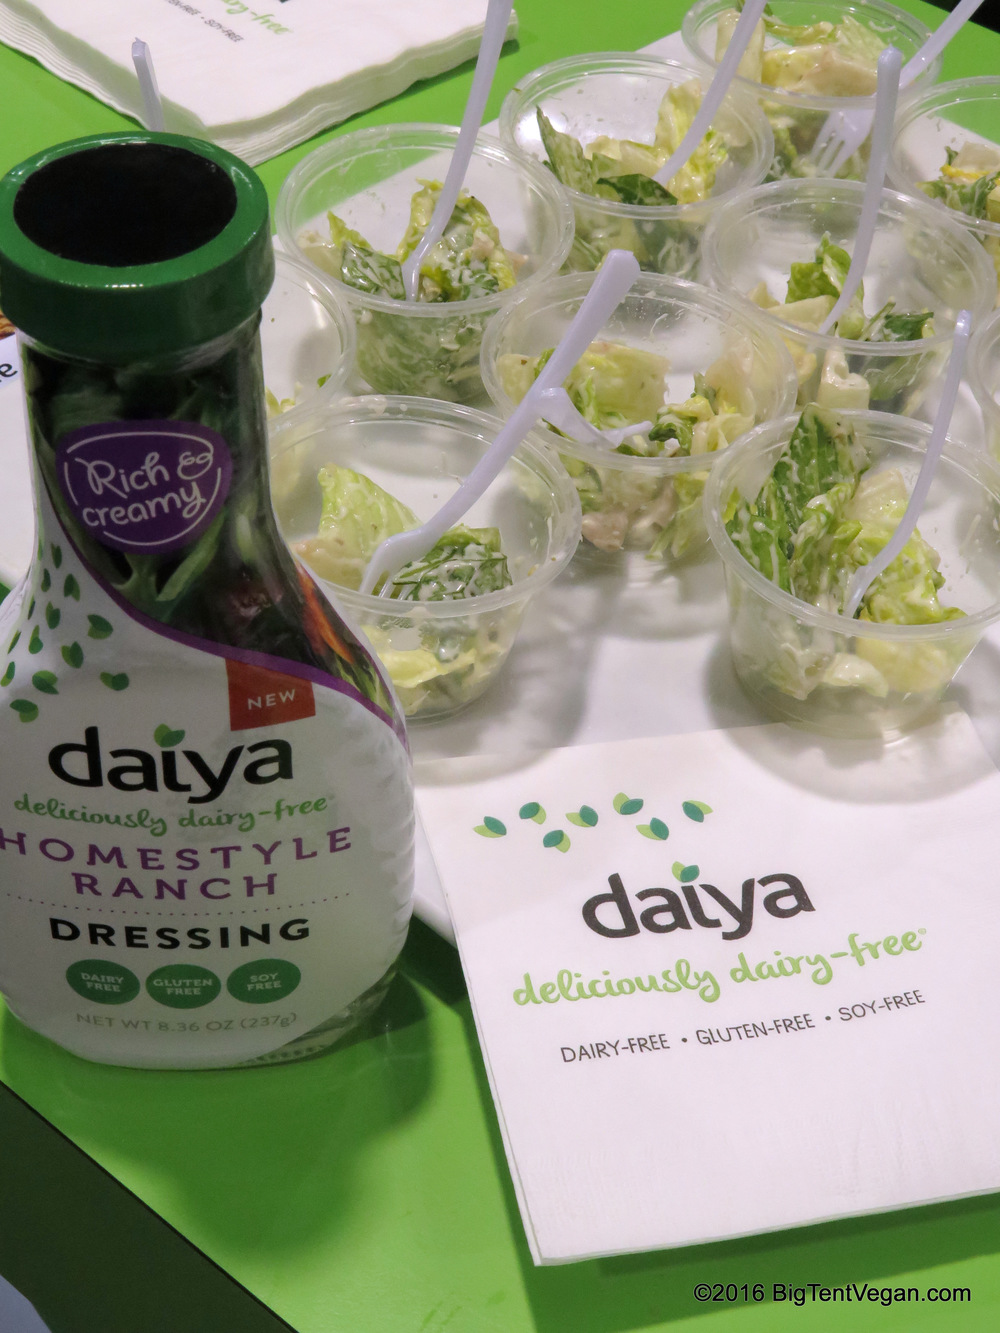 Daiya had a bunch of new products to show at a huge booth.  Along with the pictured Ranch, they were also sampling their new Blue Cheese and Ceasar's dressings.